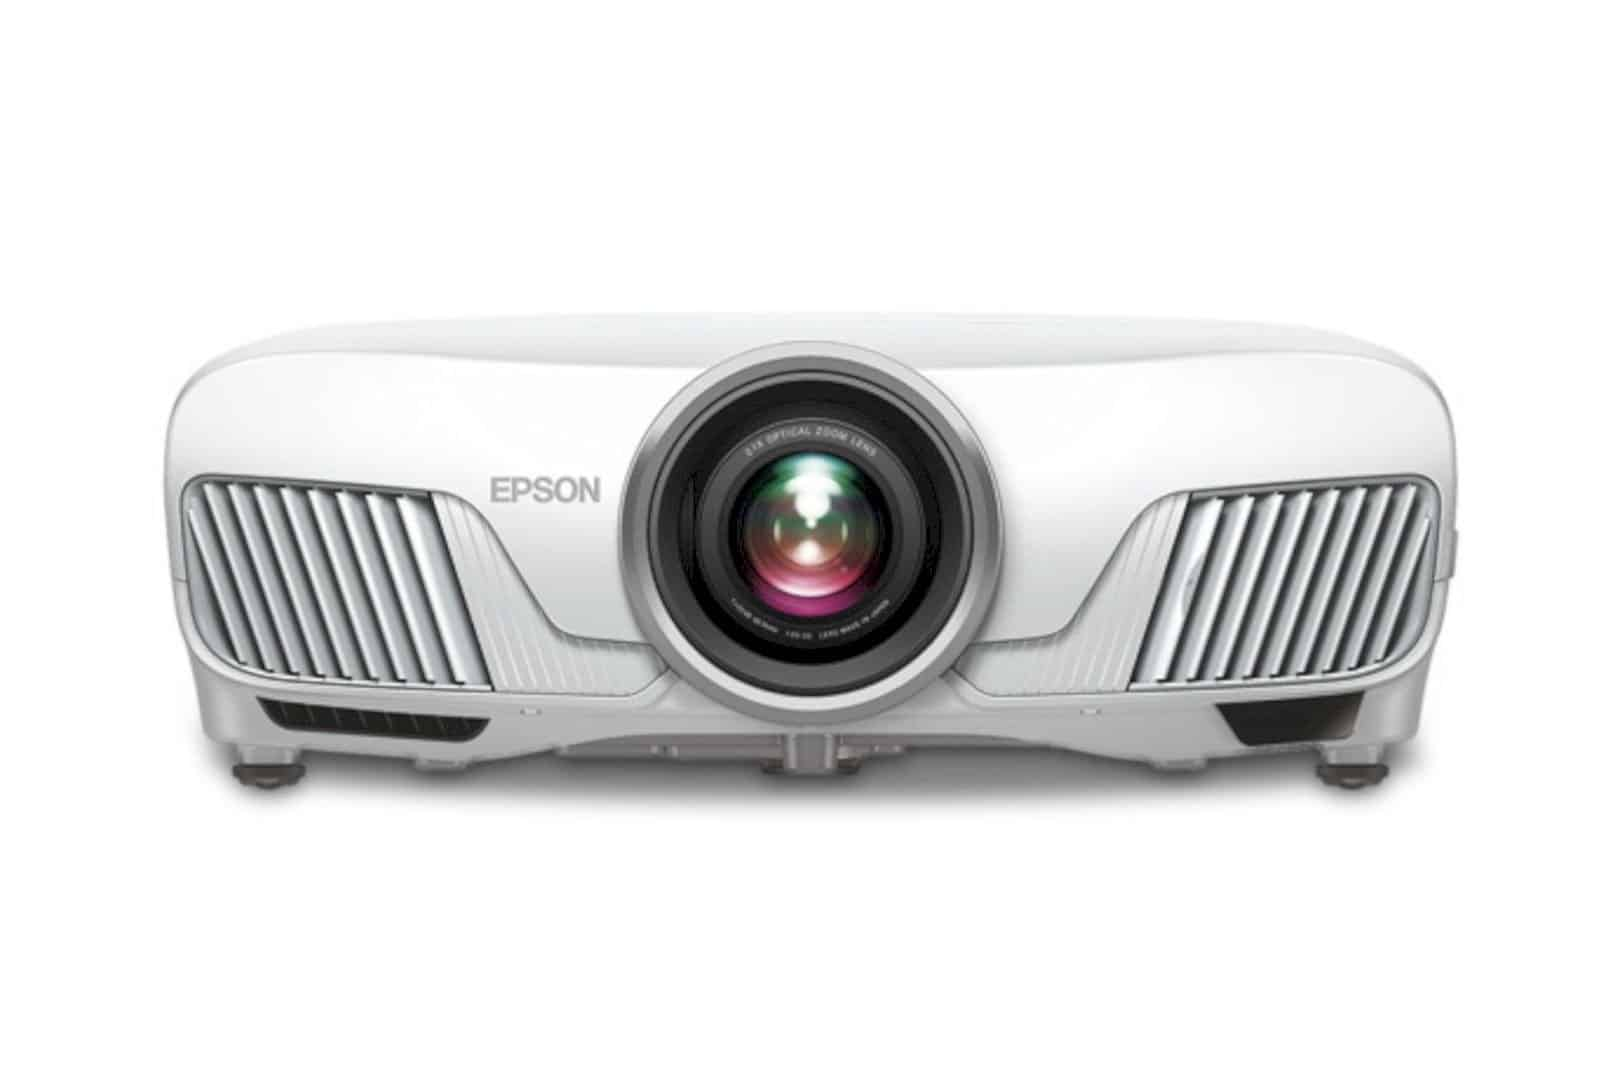 Epson Home Cinema 4010 4K PRO-UHD Projector: The Most Advanced 3-Chip Design Projector